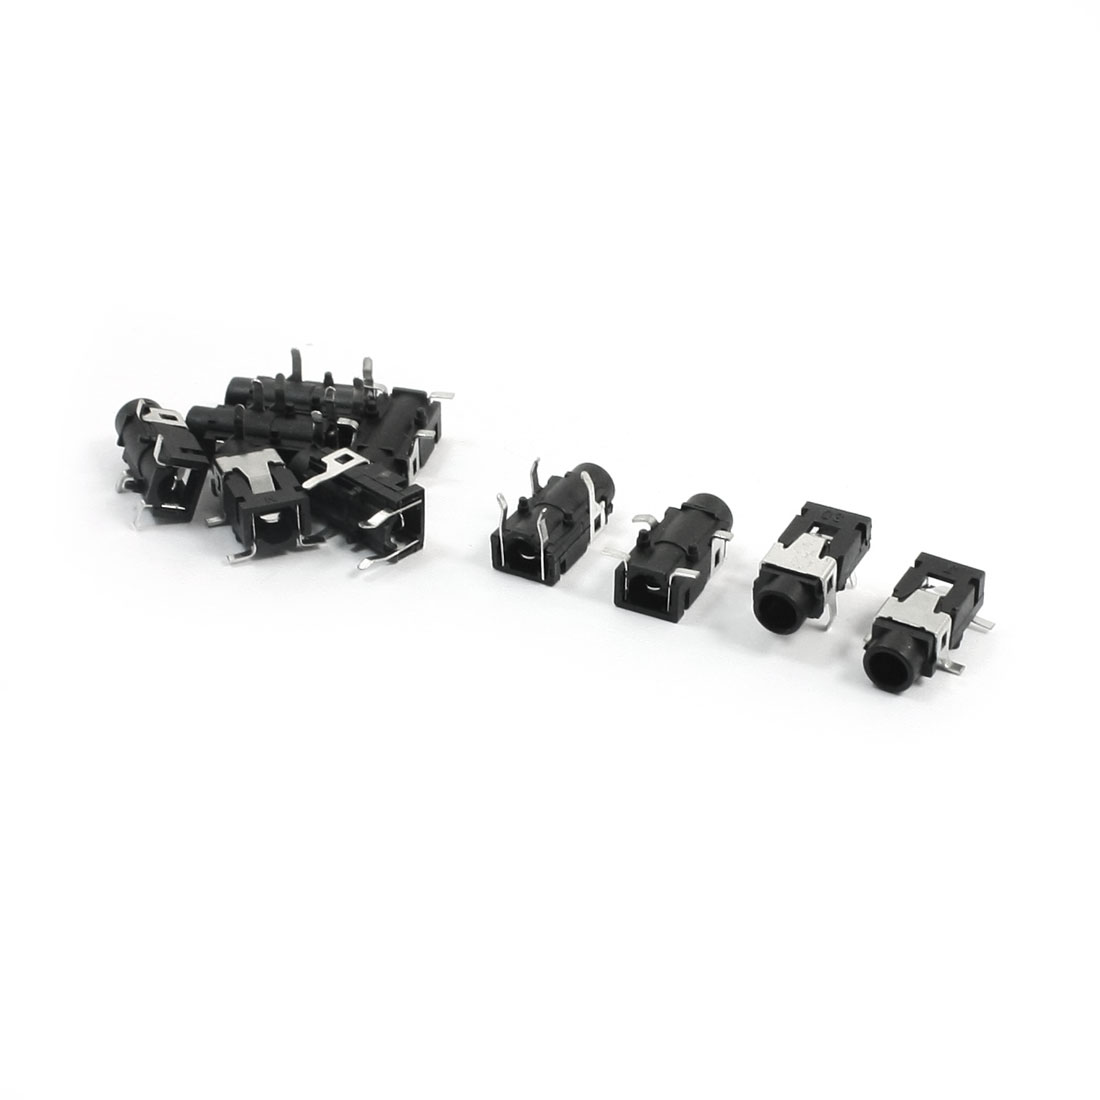 10pcs Black 4 Pin 3.5mm Stereo Jack Socket PCB Mount Connector for MP3